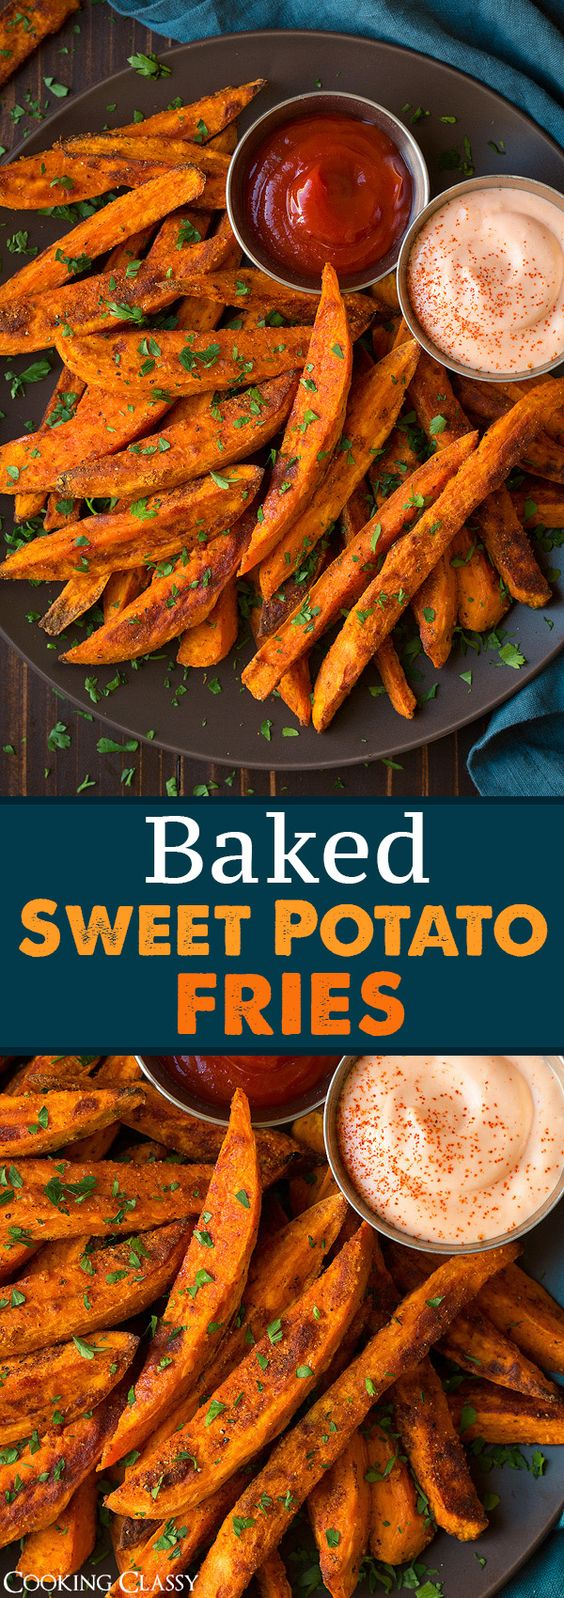 Baked Sweet Potato Fries - One of the best dinner sides! The fry sauce is a must.: